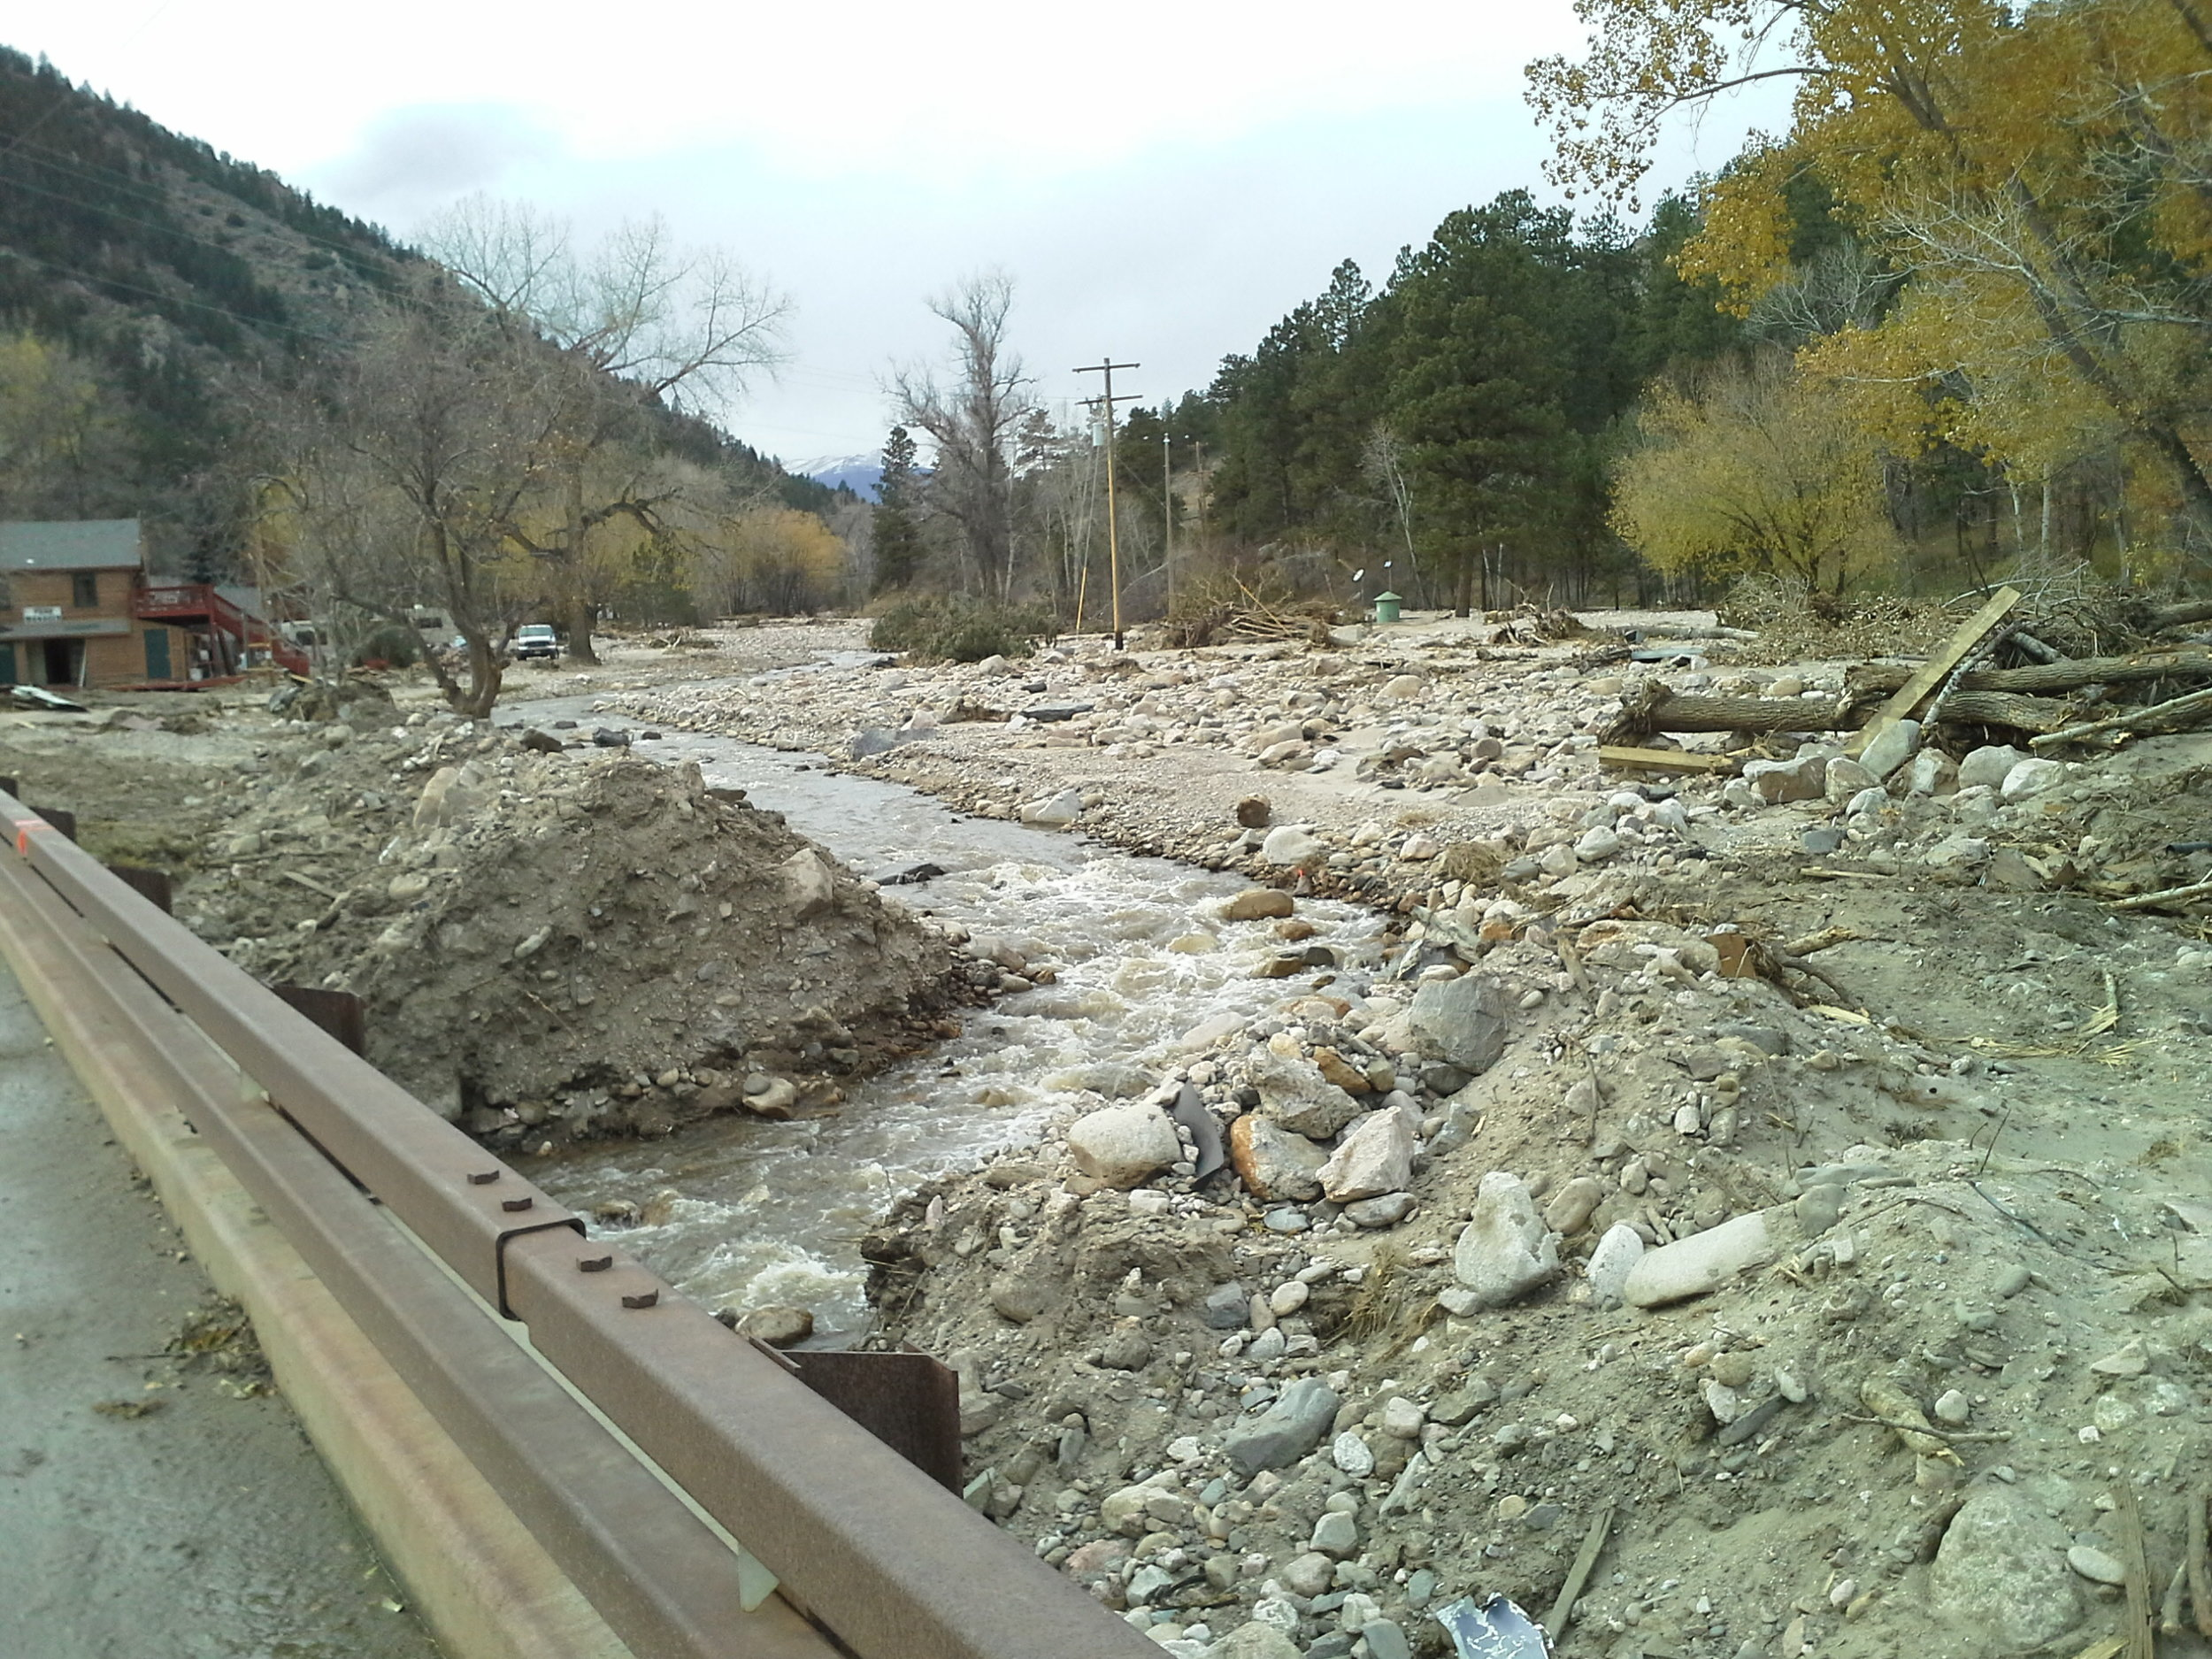 November 2013: Looking upstream at the North Fork of the Big Thompson River from the US 34 bridge 2 months after the flood. The flood deposited massive amounts of sediment and debris at the confluence of the two rivers. Water and sediment caused damage the homes, businesses, roadways, and bridges located in the active river corridor. Photo Credit: Bill Spitz.